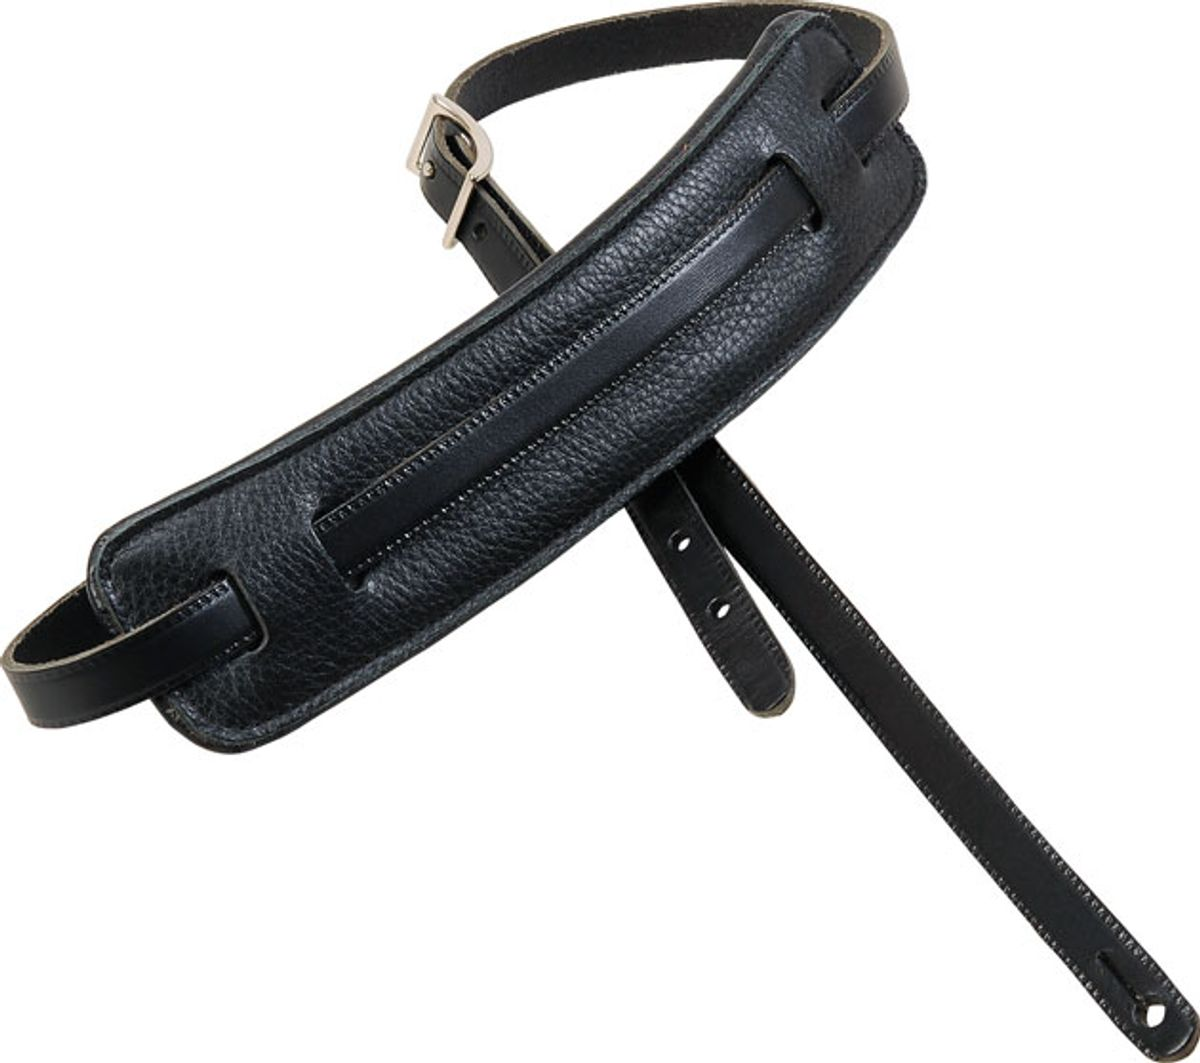 Levy's Leathers Announce MG25 Strap